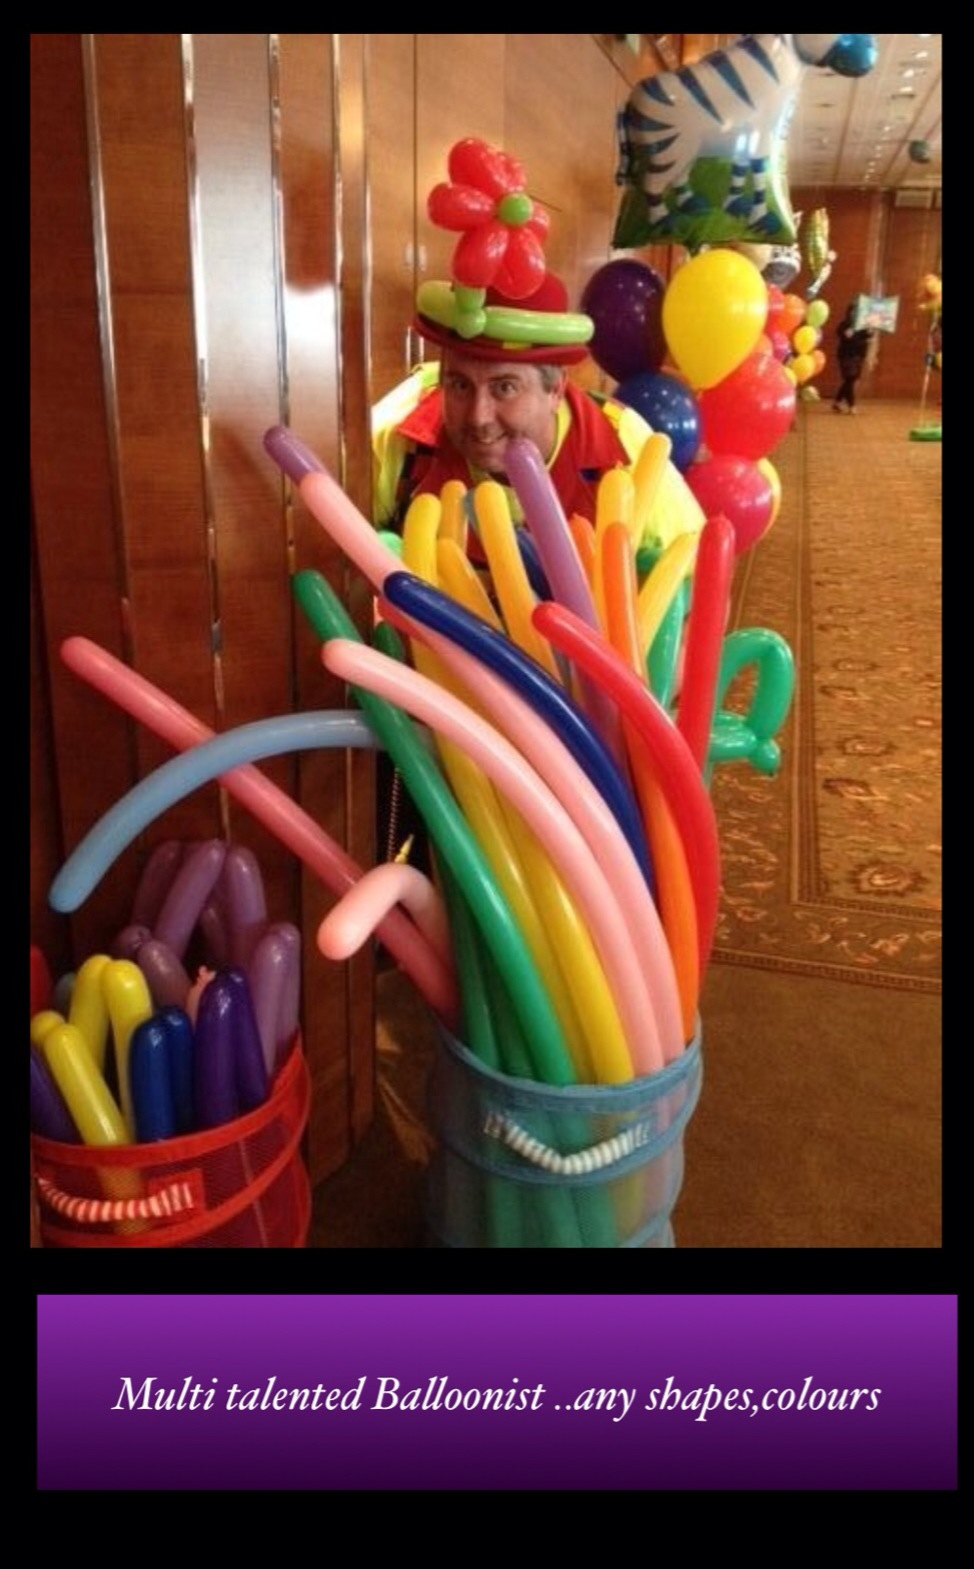 Our balloon modelling entertainer is multi talented - any size, any shape, any colour, ...